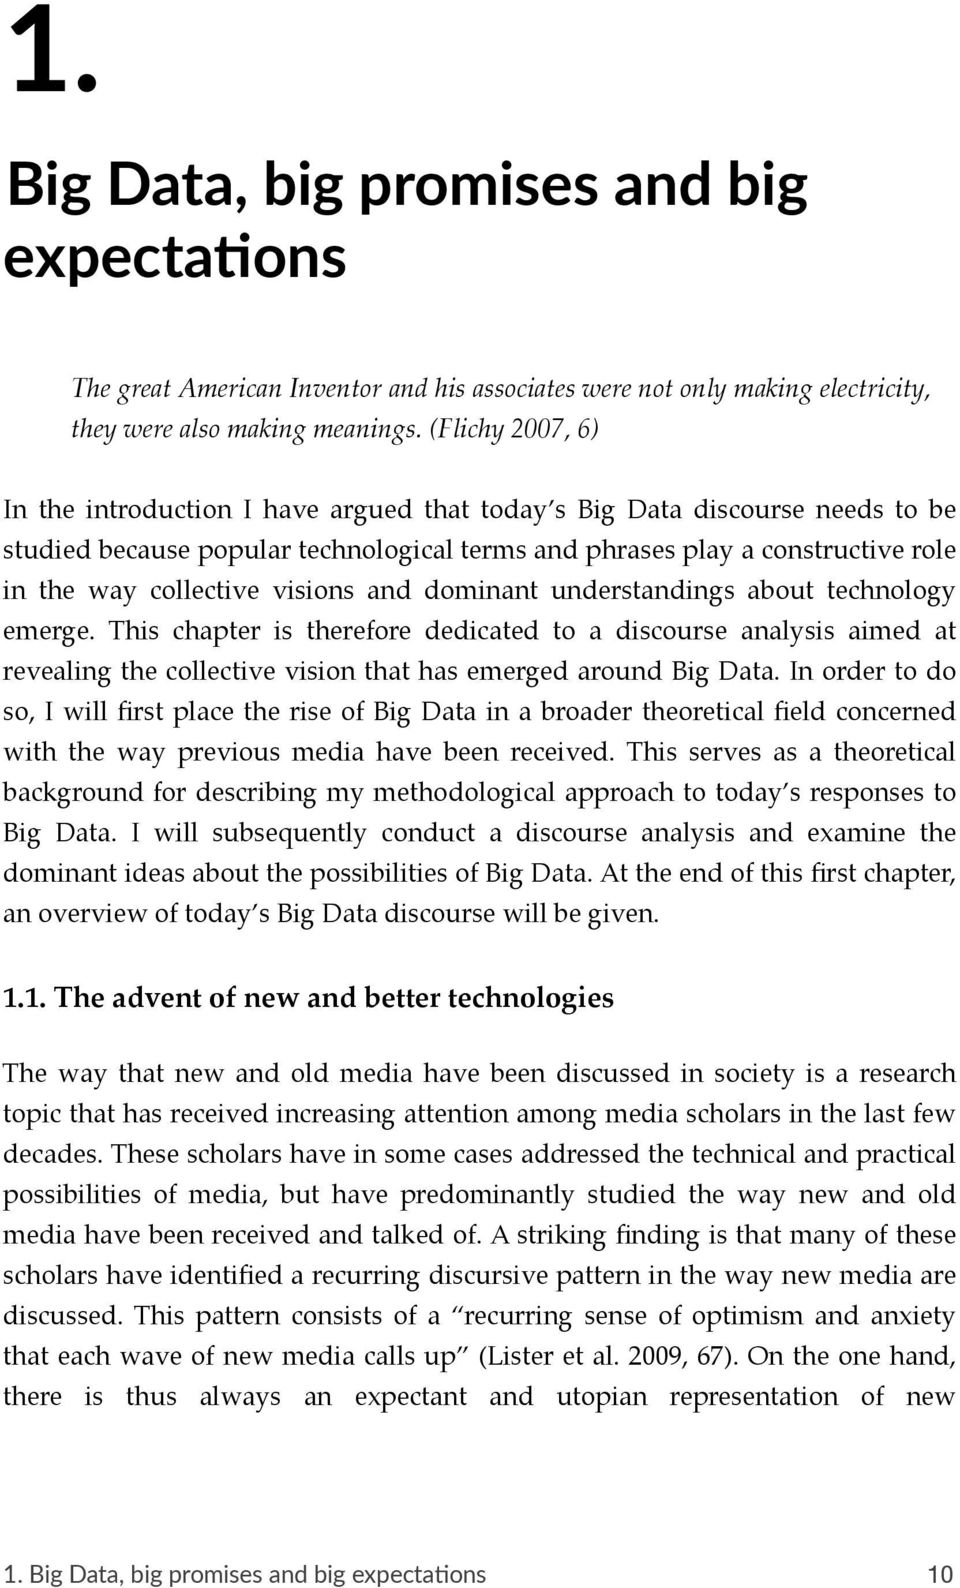 visions and dominant understandings about technology emerge. This chapter is therefore dedicated to a discourse analysis aimed at revealing the collective vision that has emerged around Big Data.